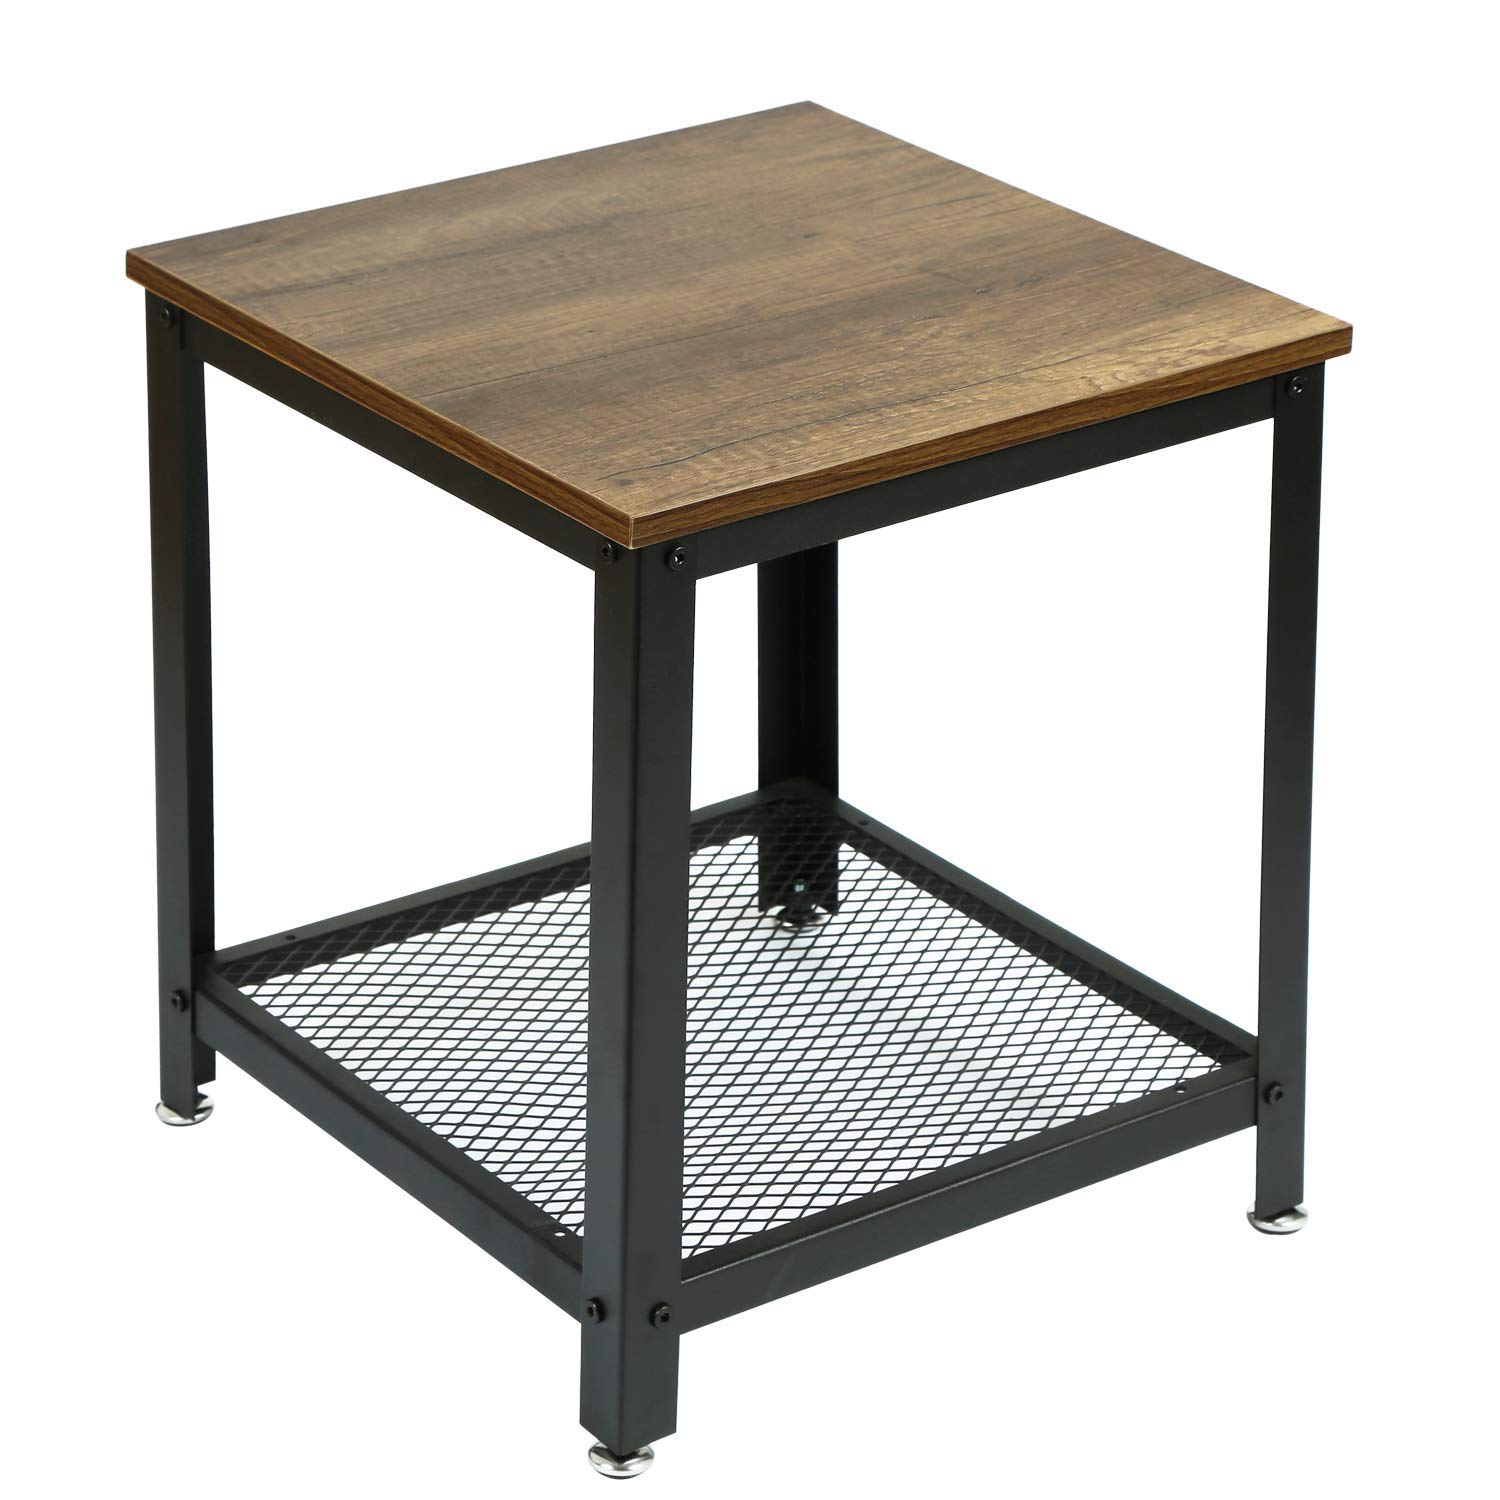 asense side table tier with storage shelf metal top accent wooden sturdy frame height inches kitchen dining natural wood threshold rustic black cabinet marble coffee and end